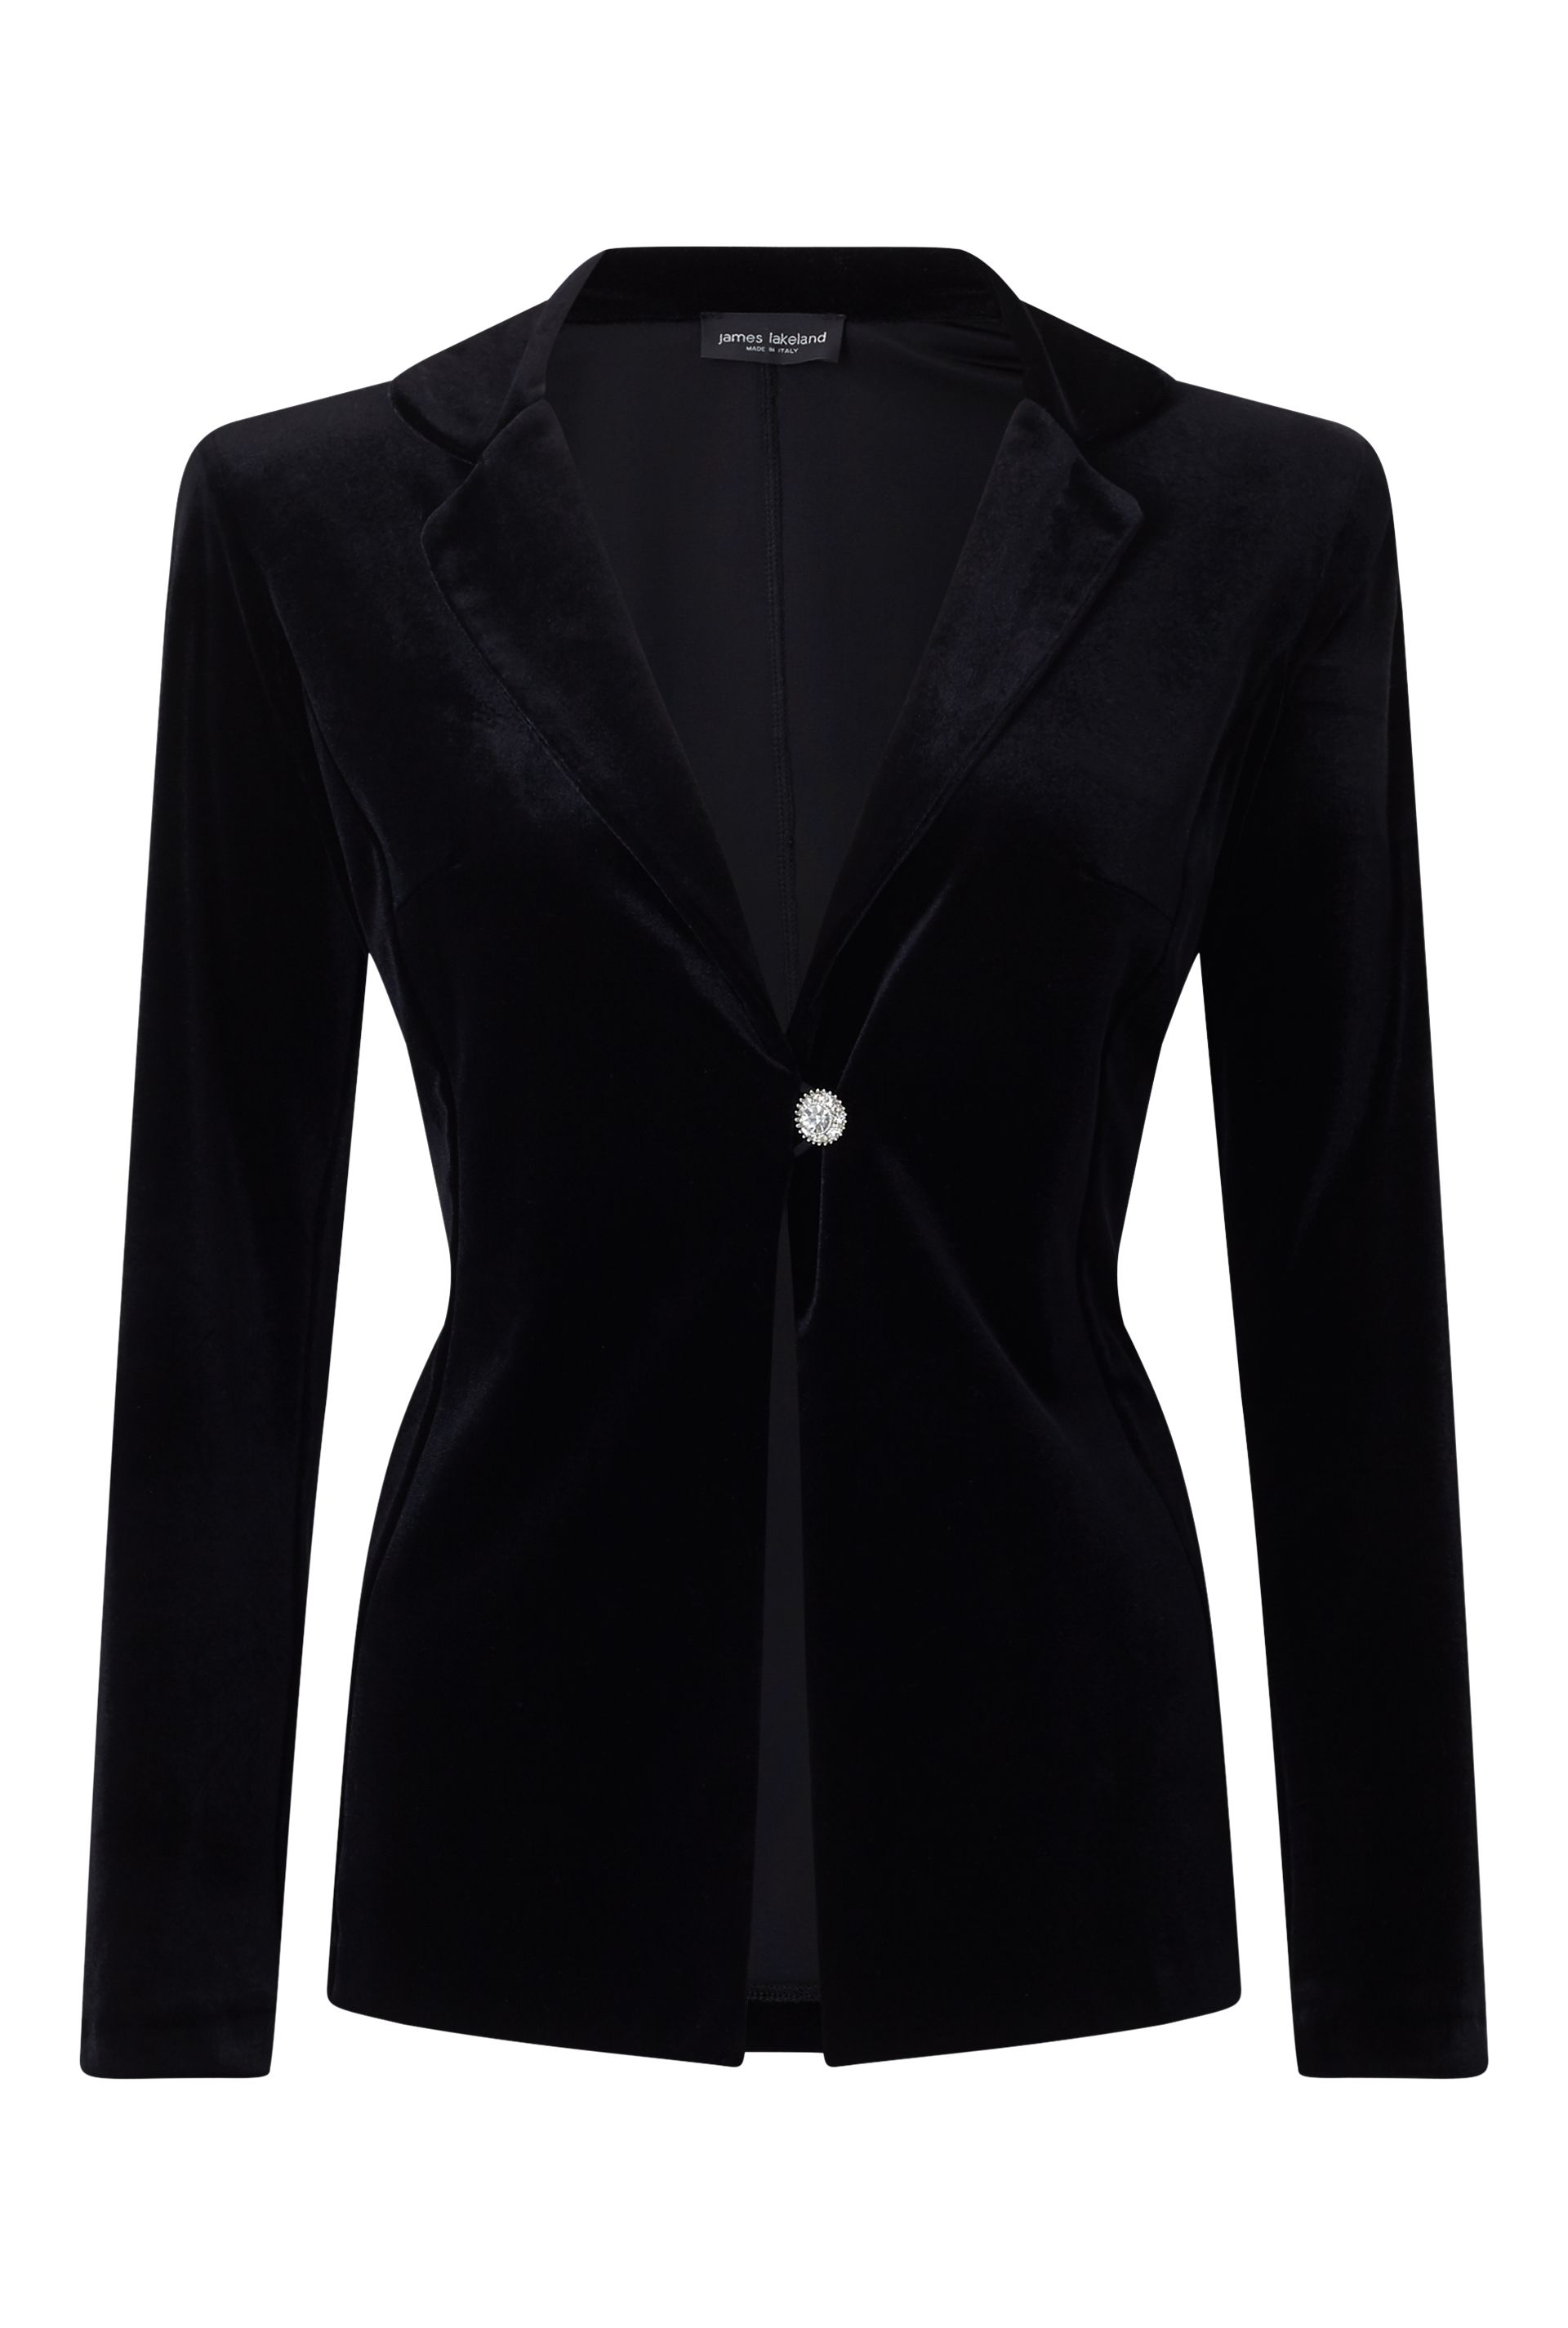 James Lakeland Velvet Diamante Jacket, Black